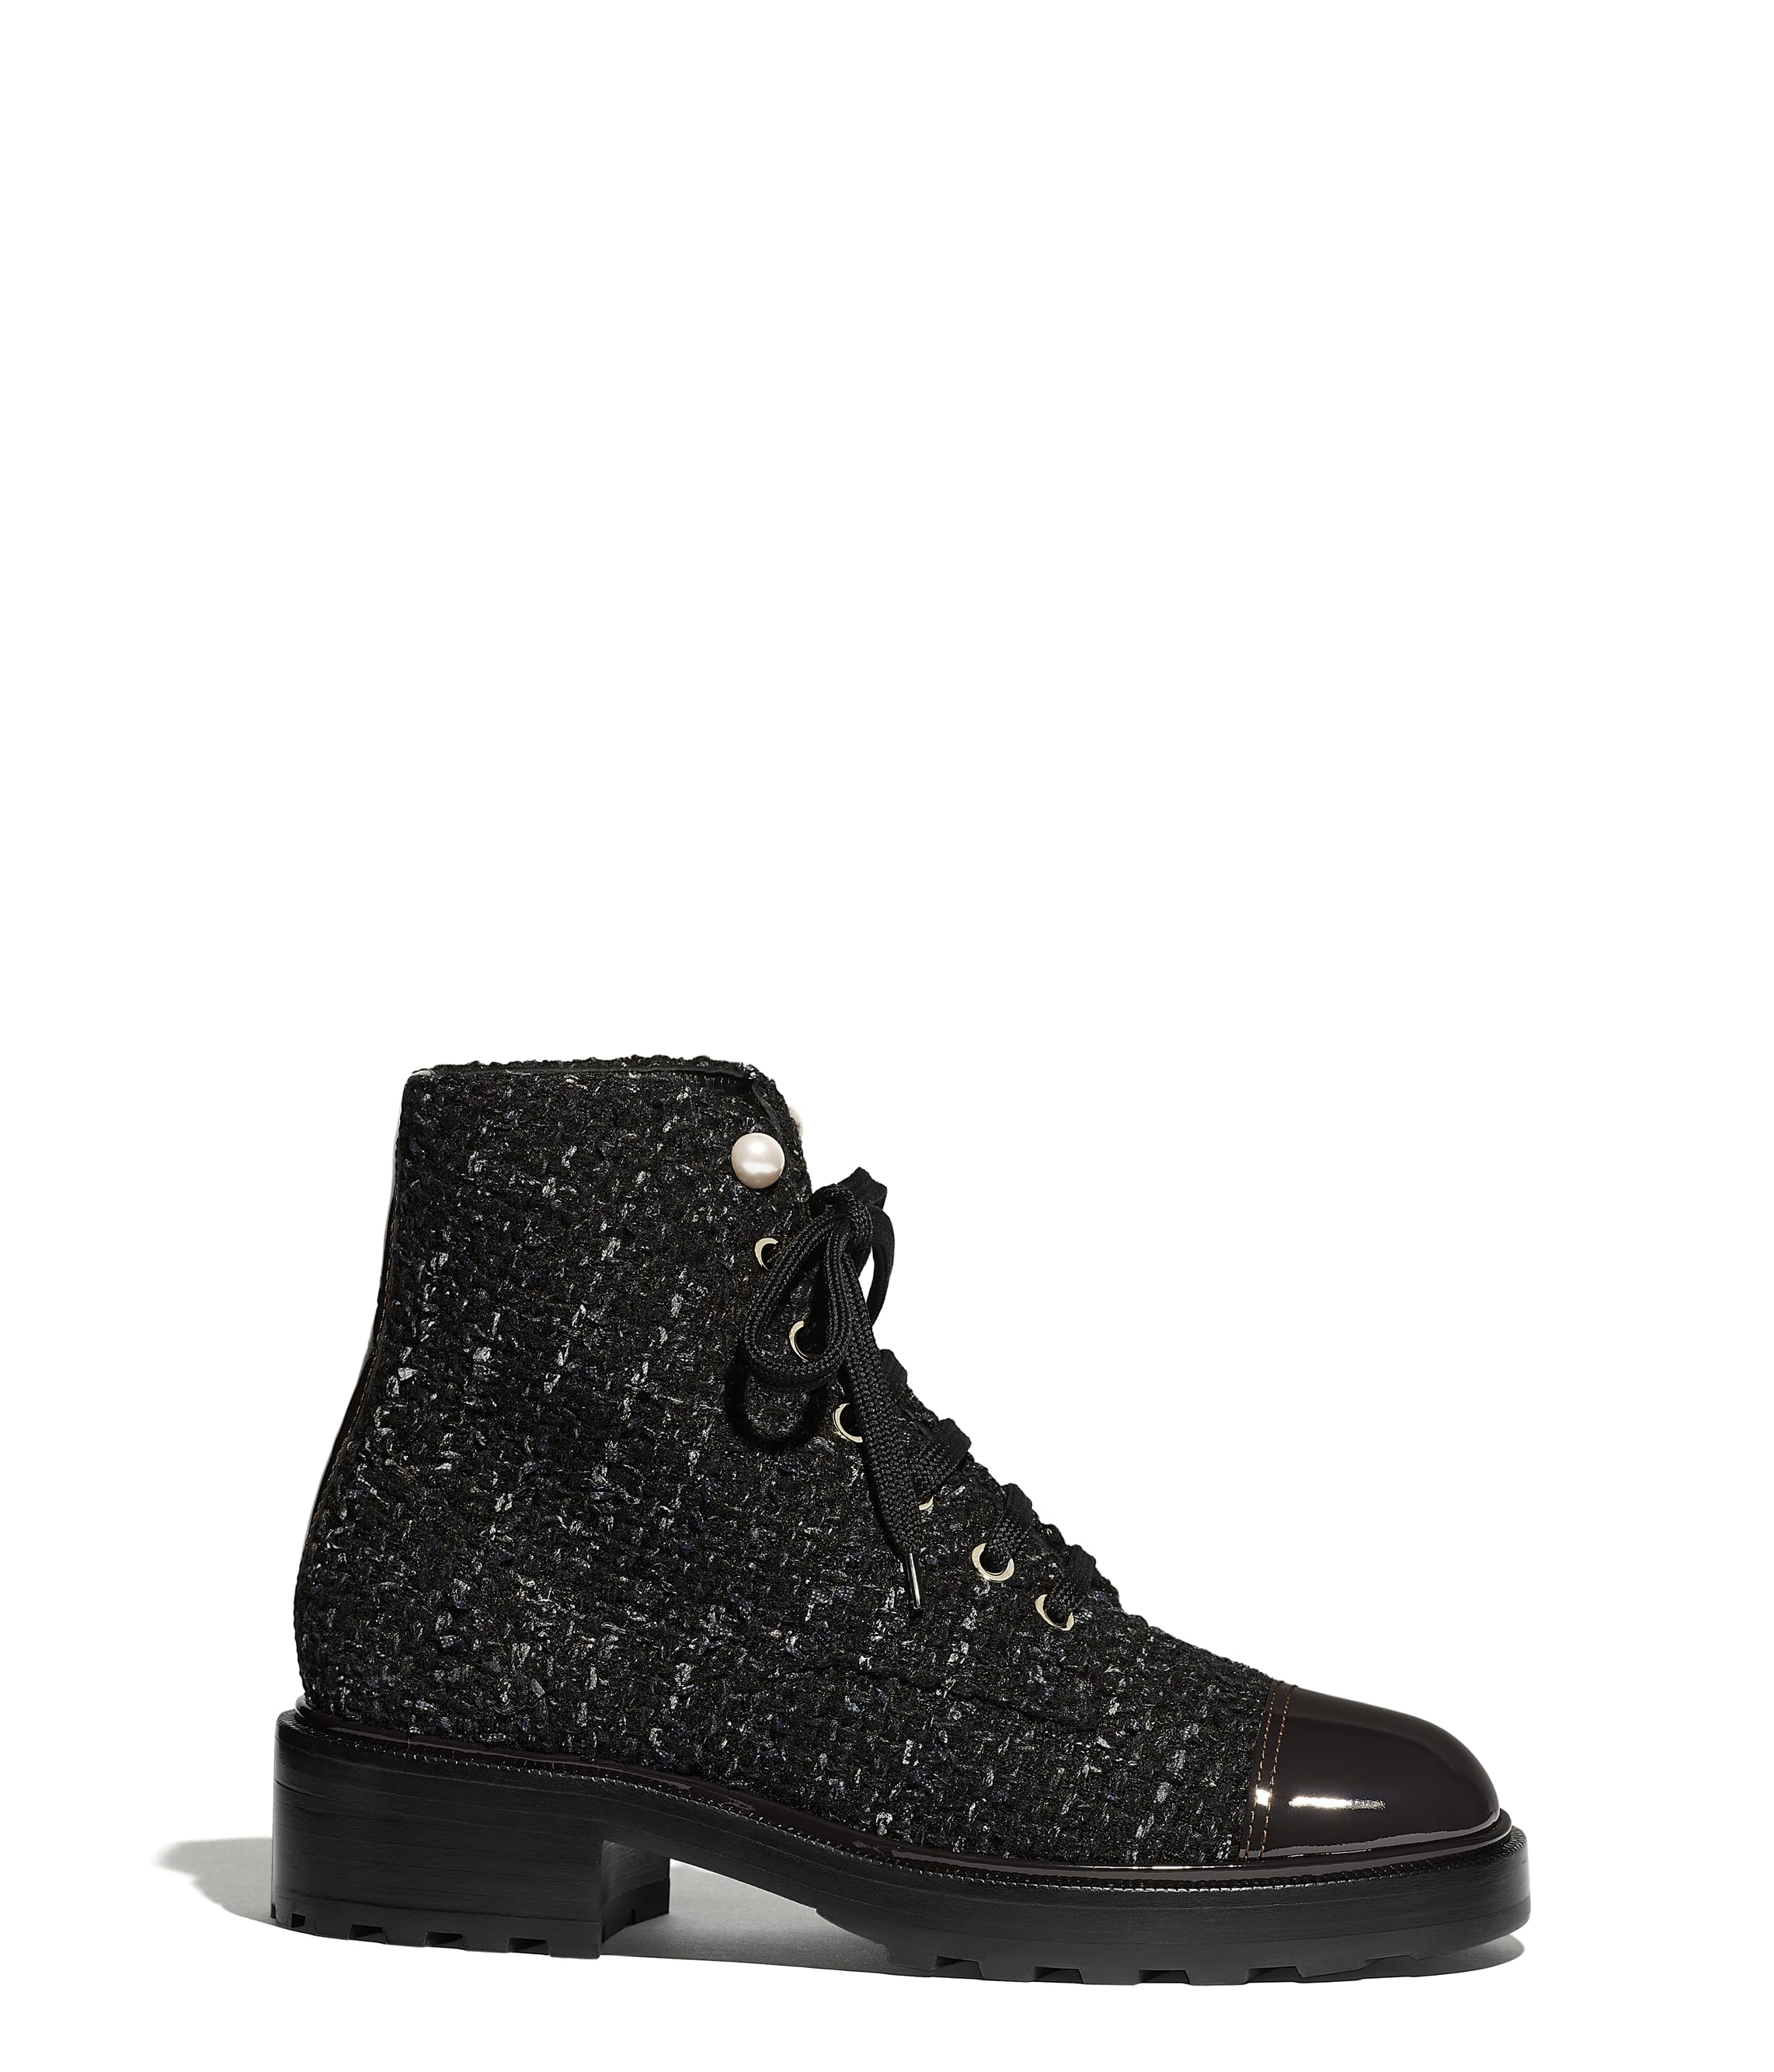 Shoes Chanel